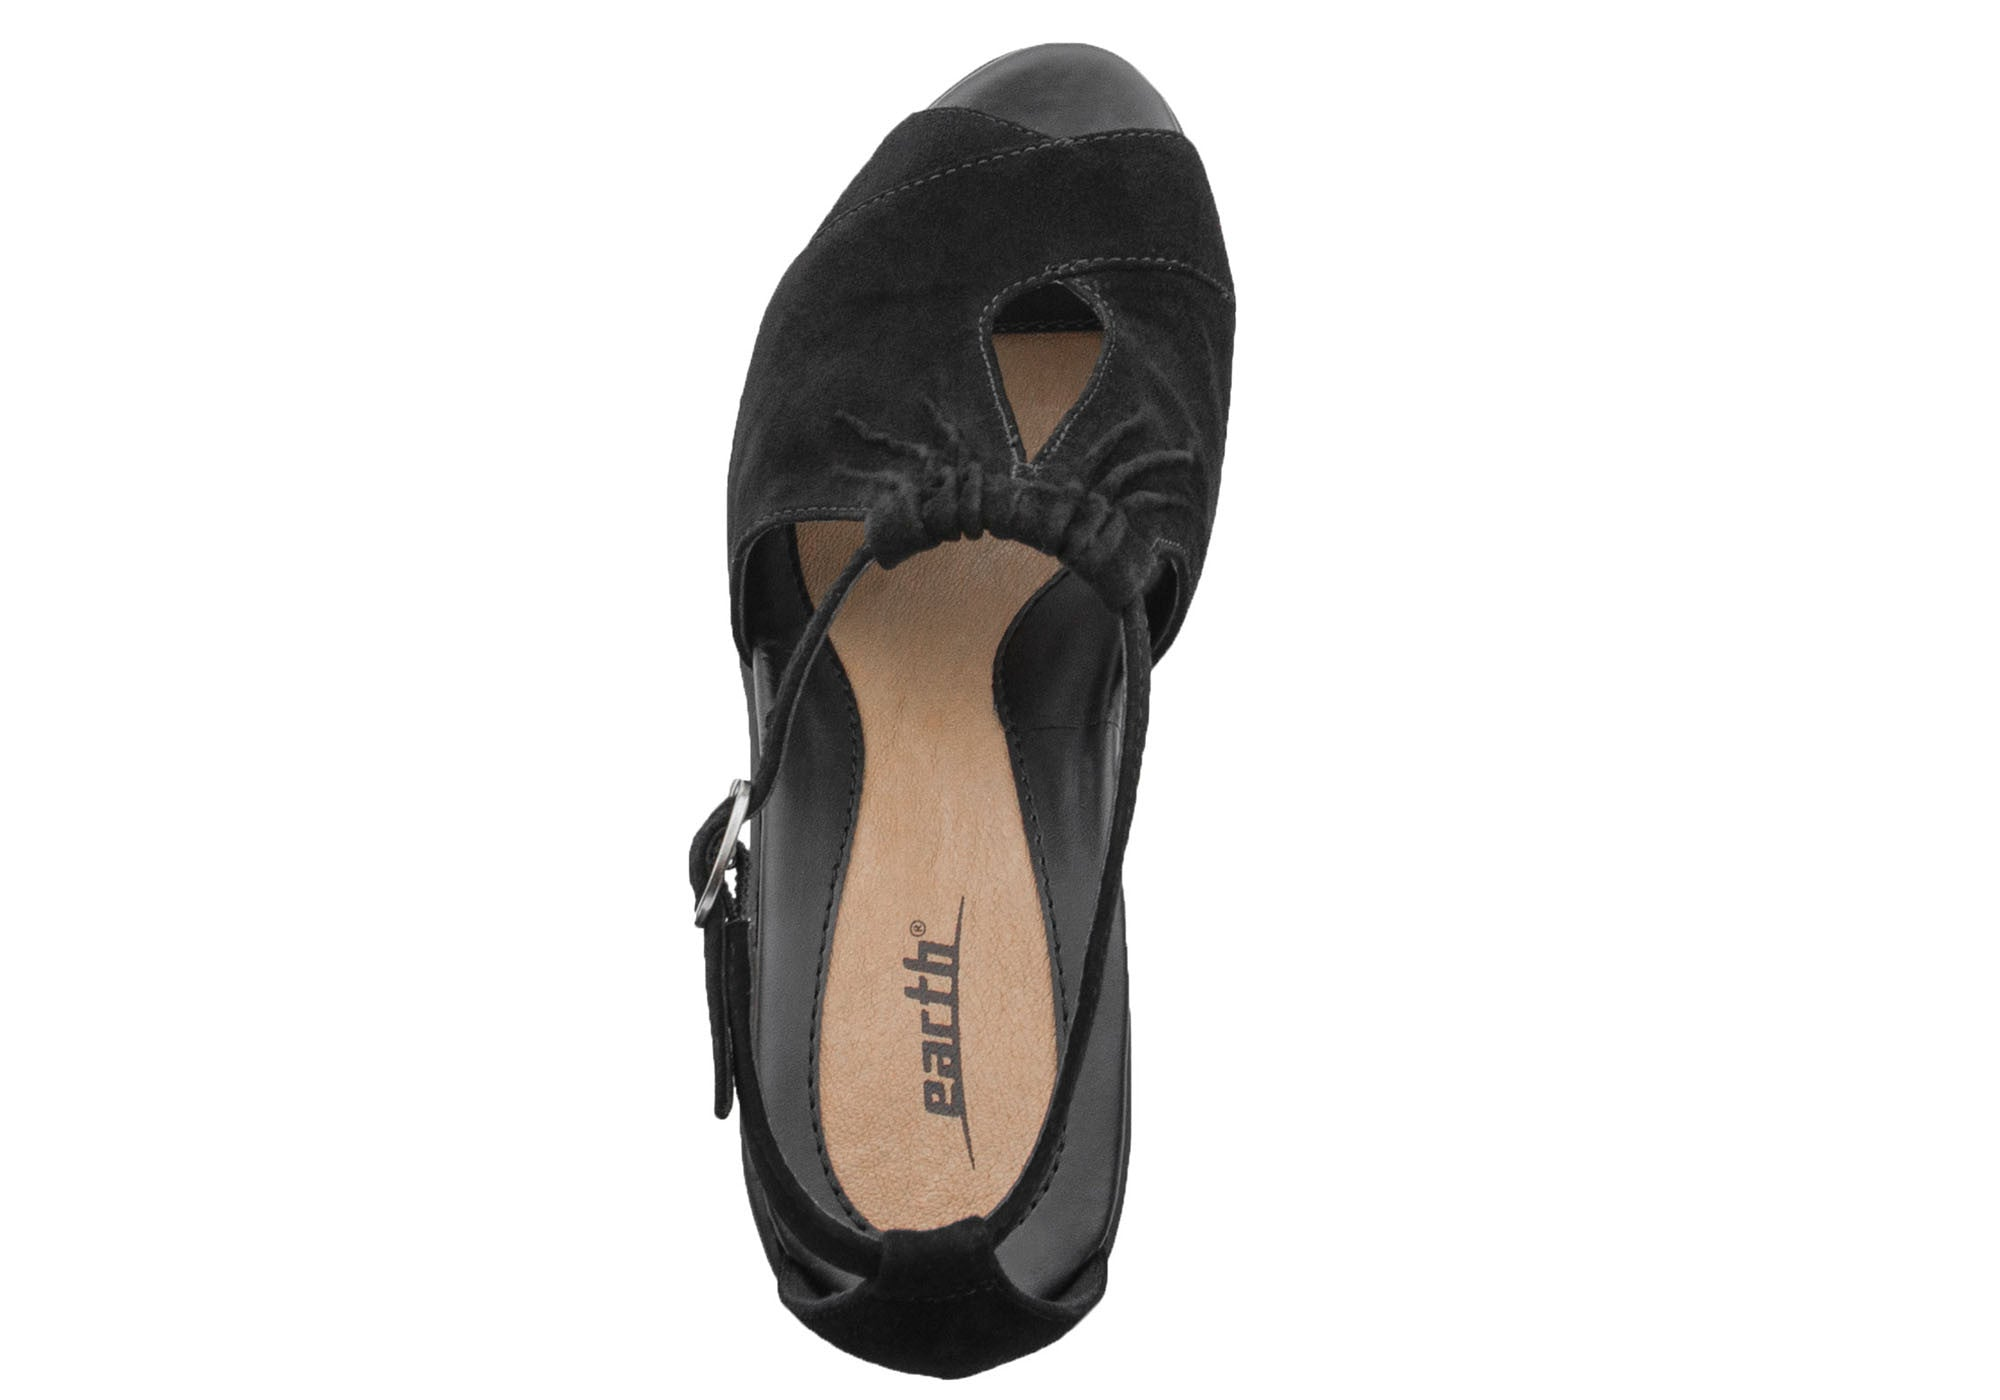 Earth Caper Womens Comfortable Wedge Sandals